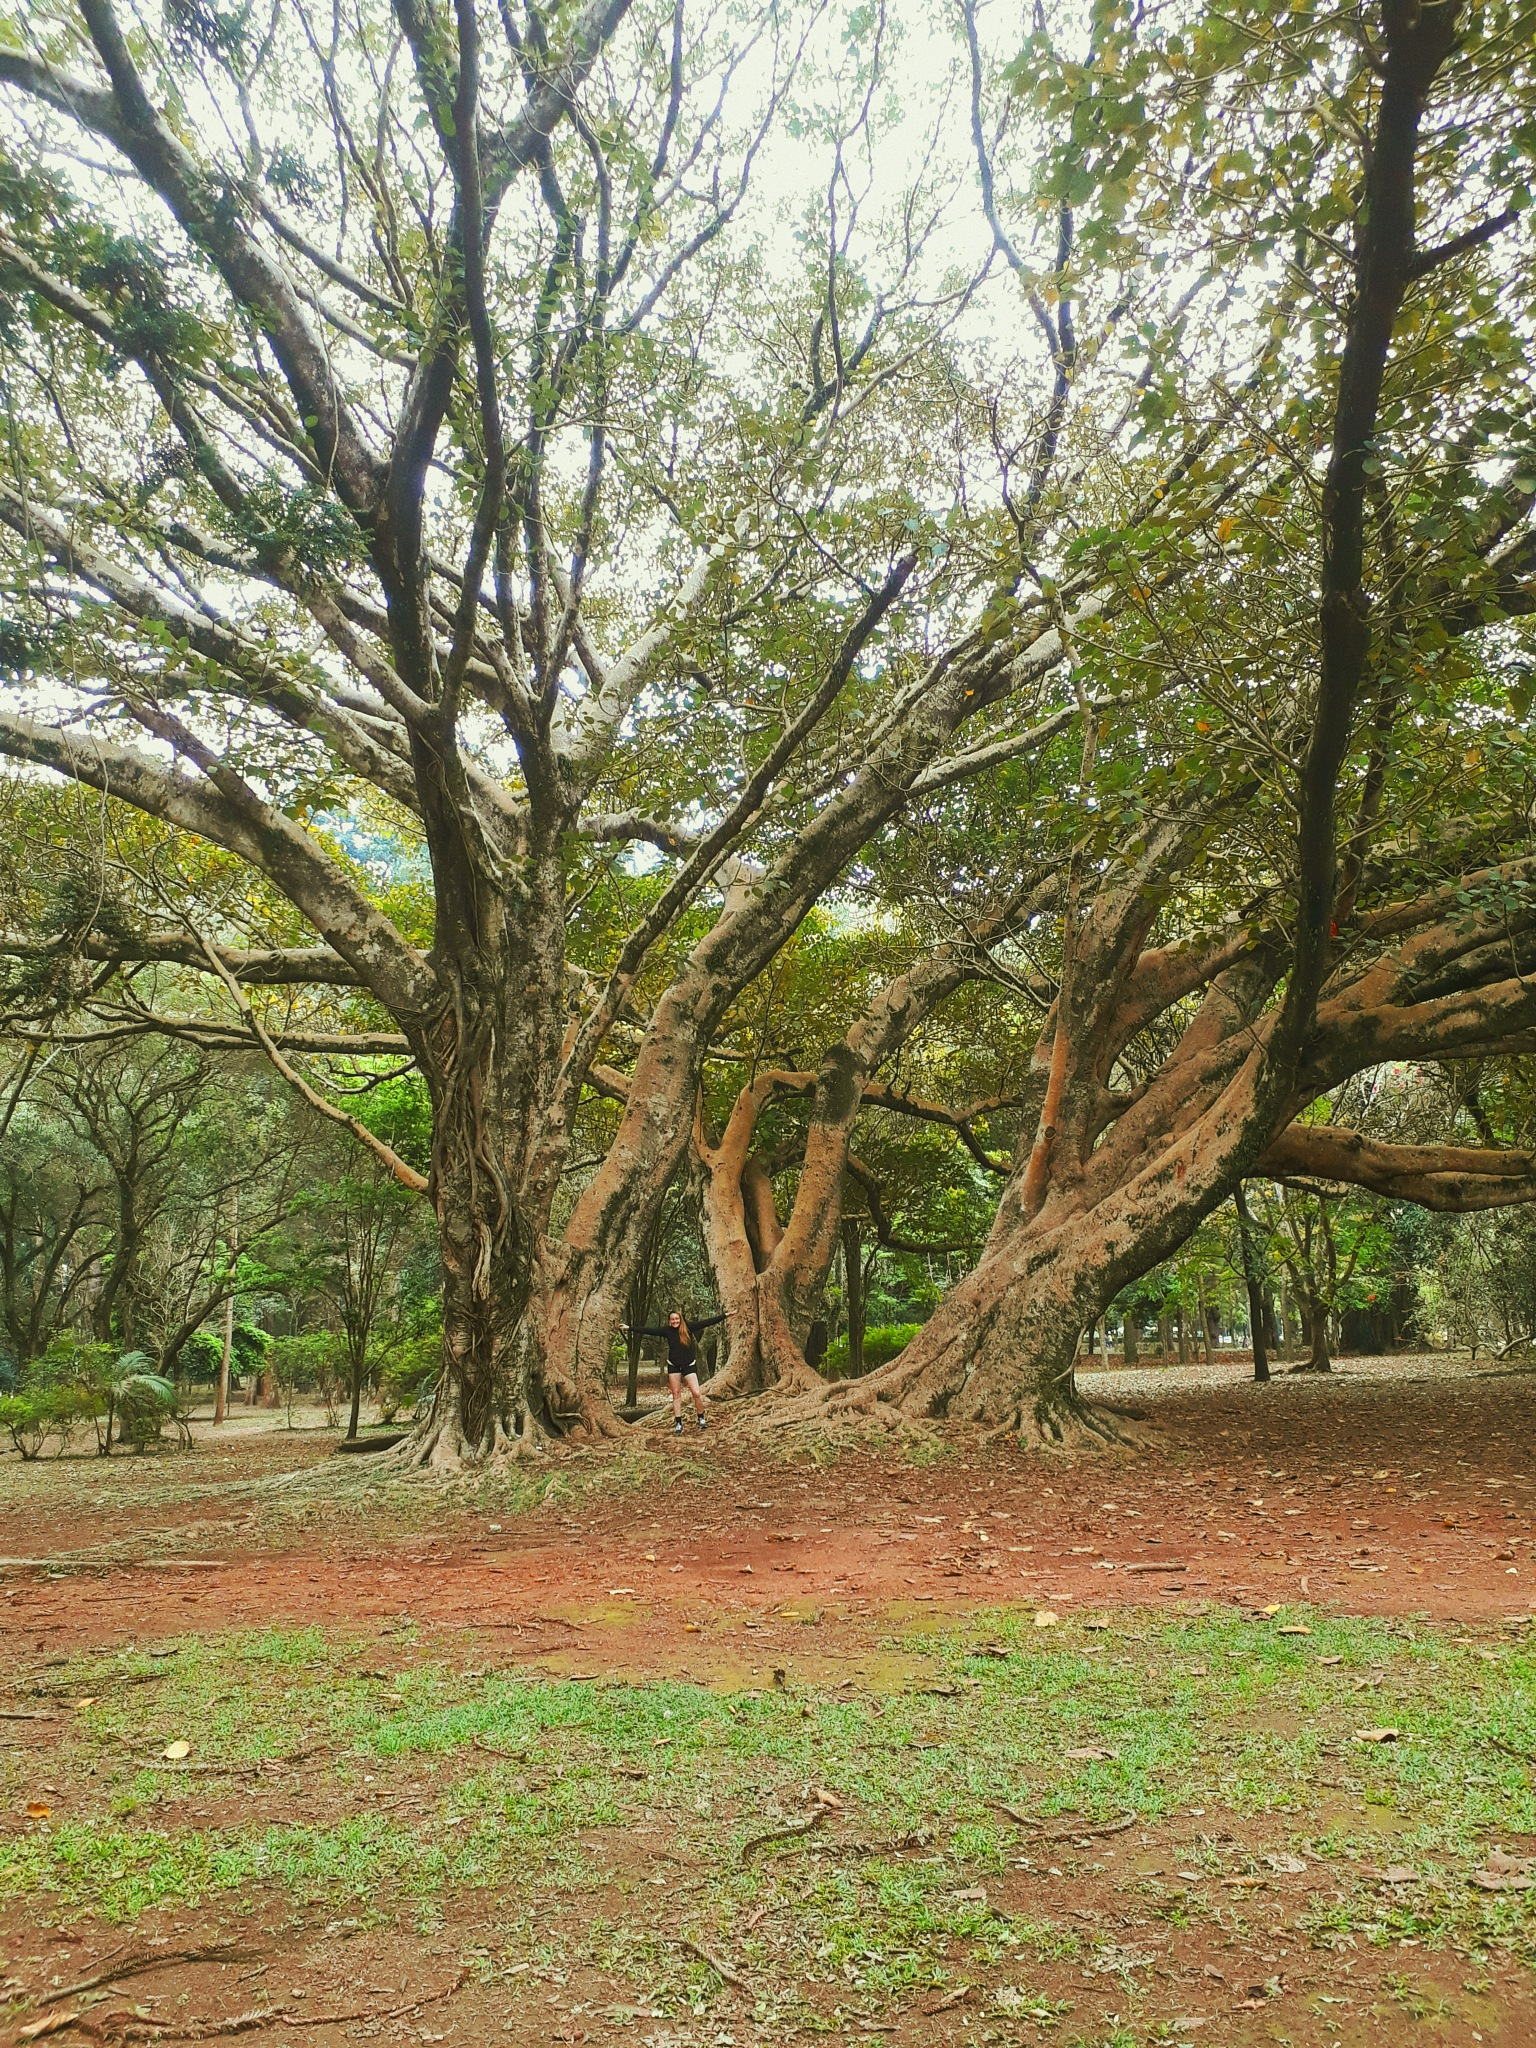 Trees are more than mere ornaments by Thayna